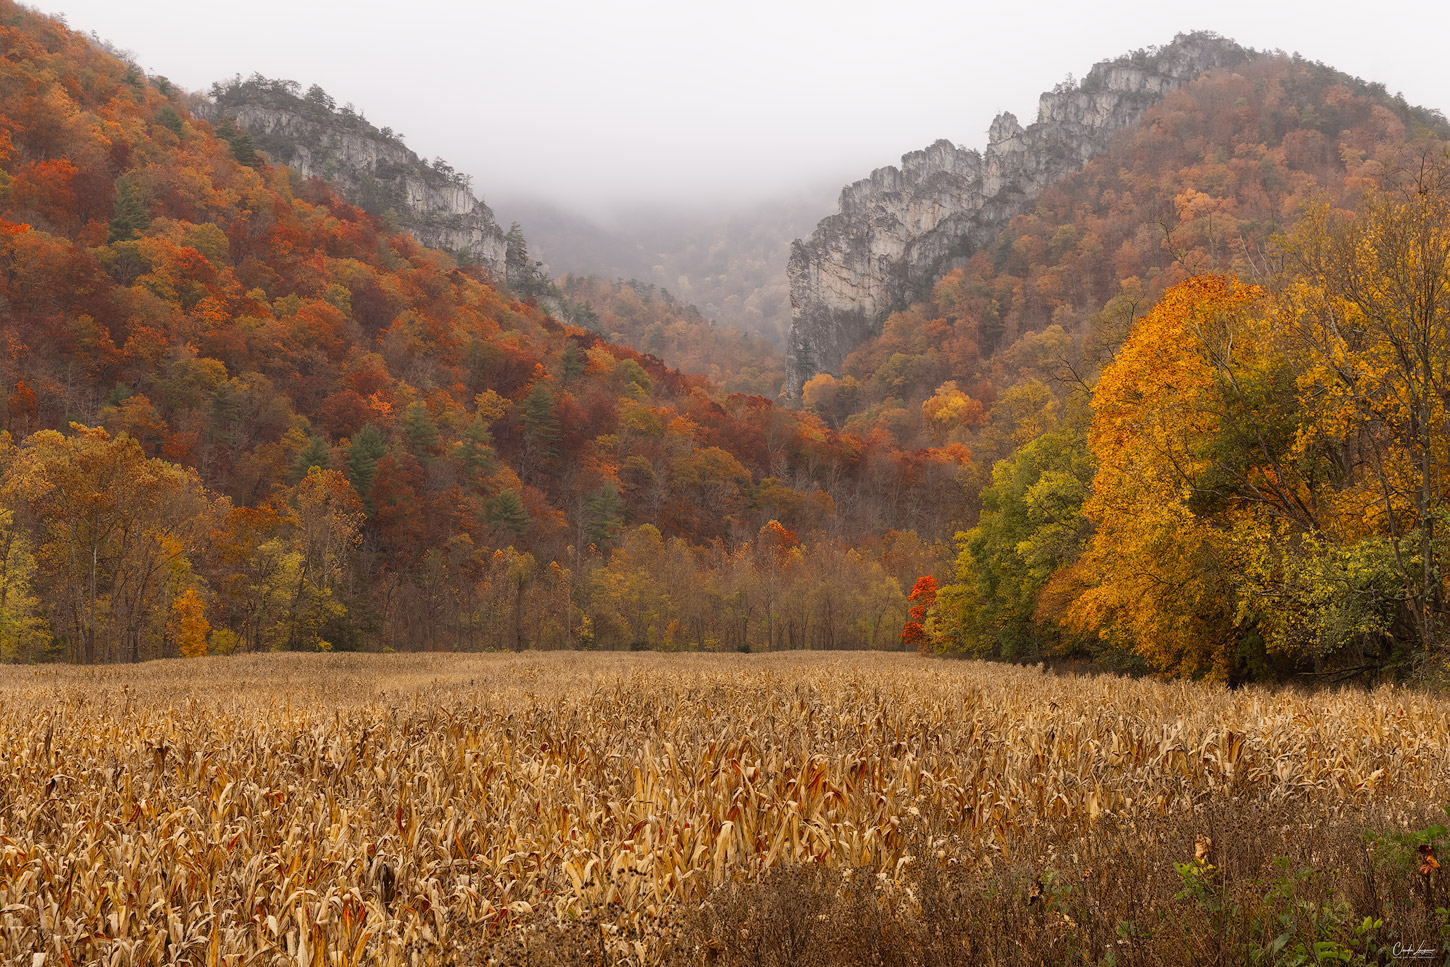 View of colorful fall scenery in West Virginia.